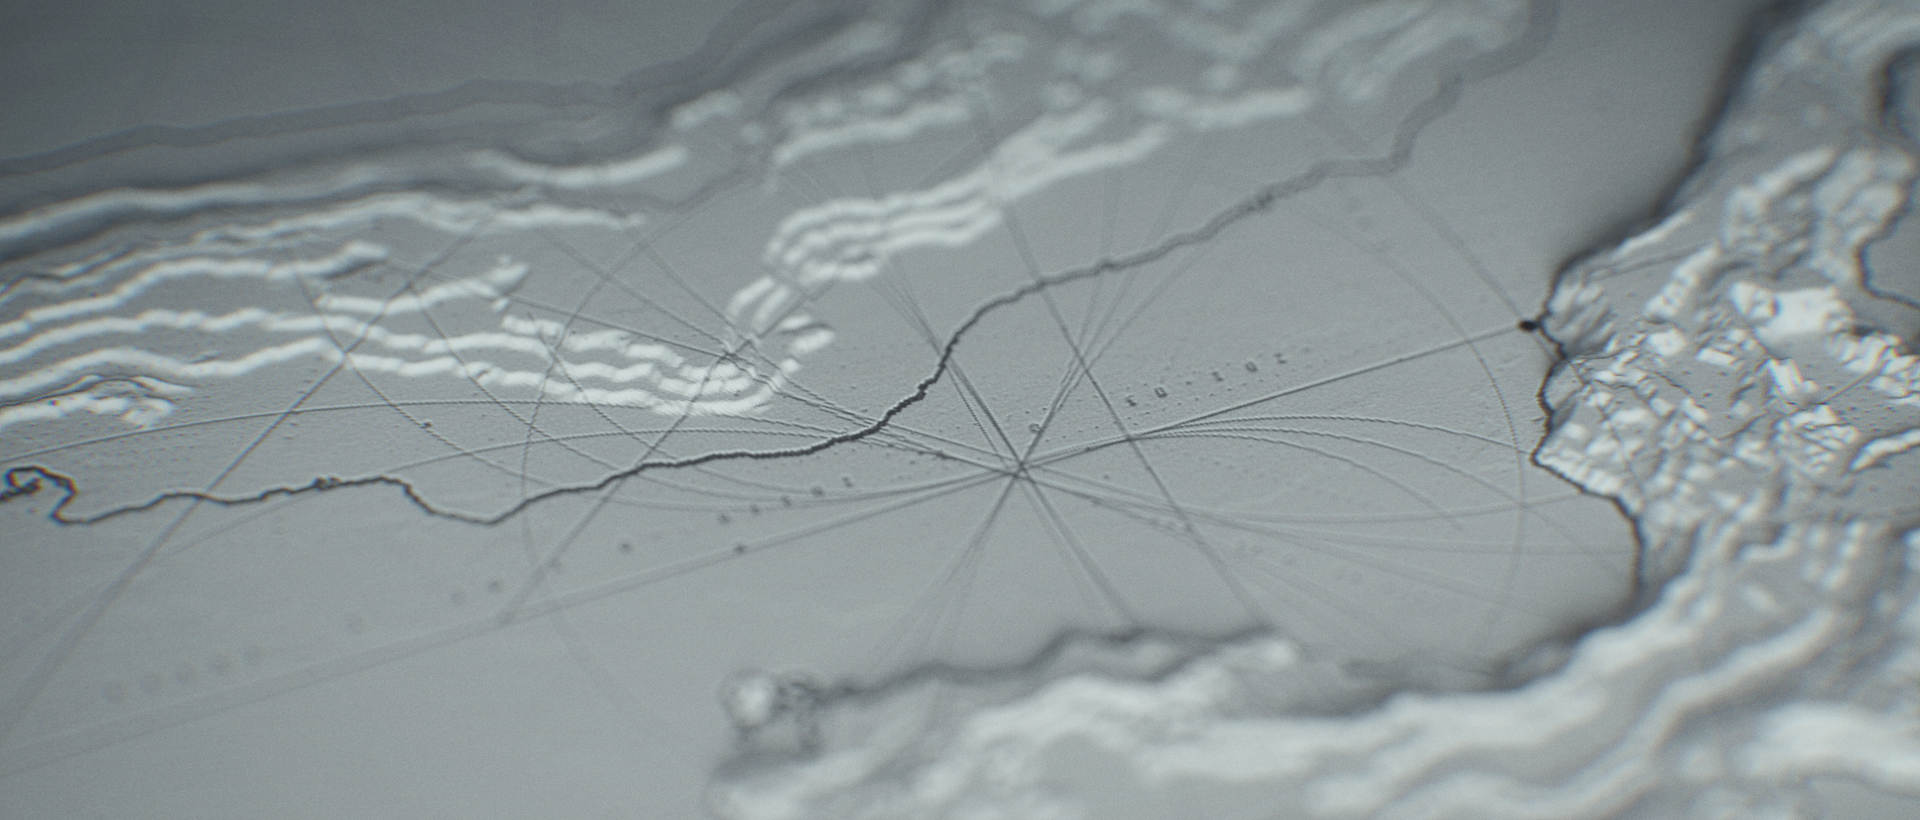 How Designer Toros Kose Generated Animated Topography in